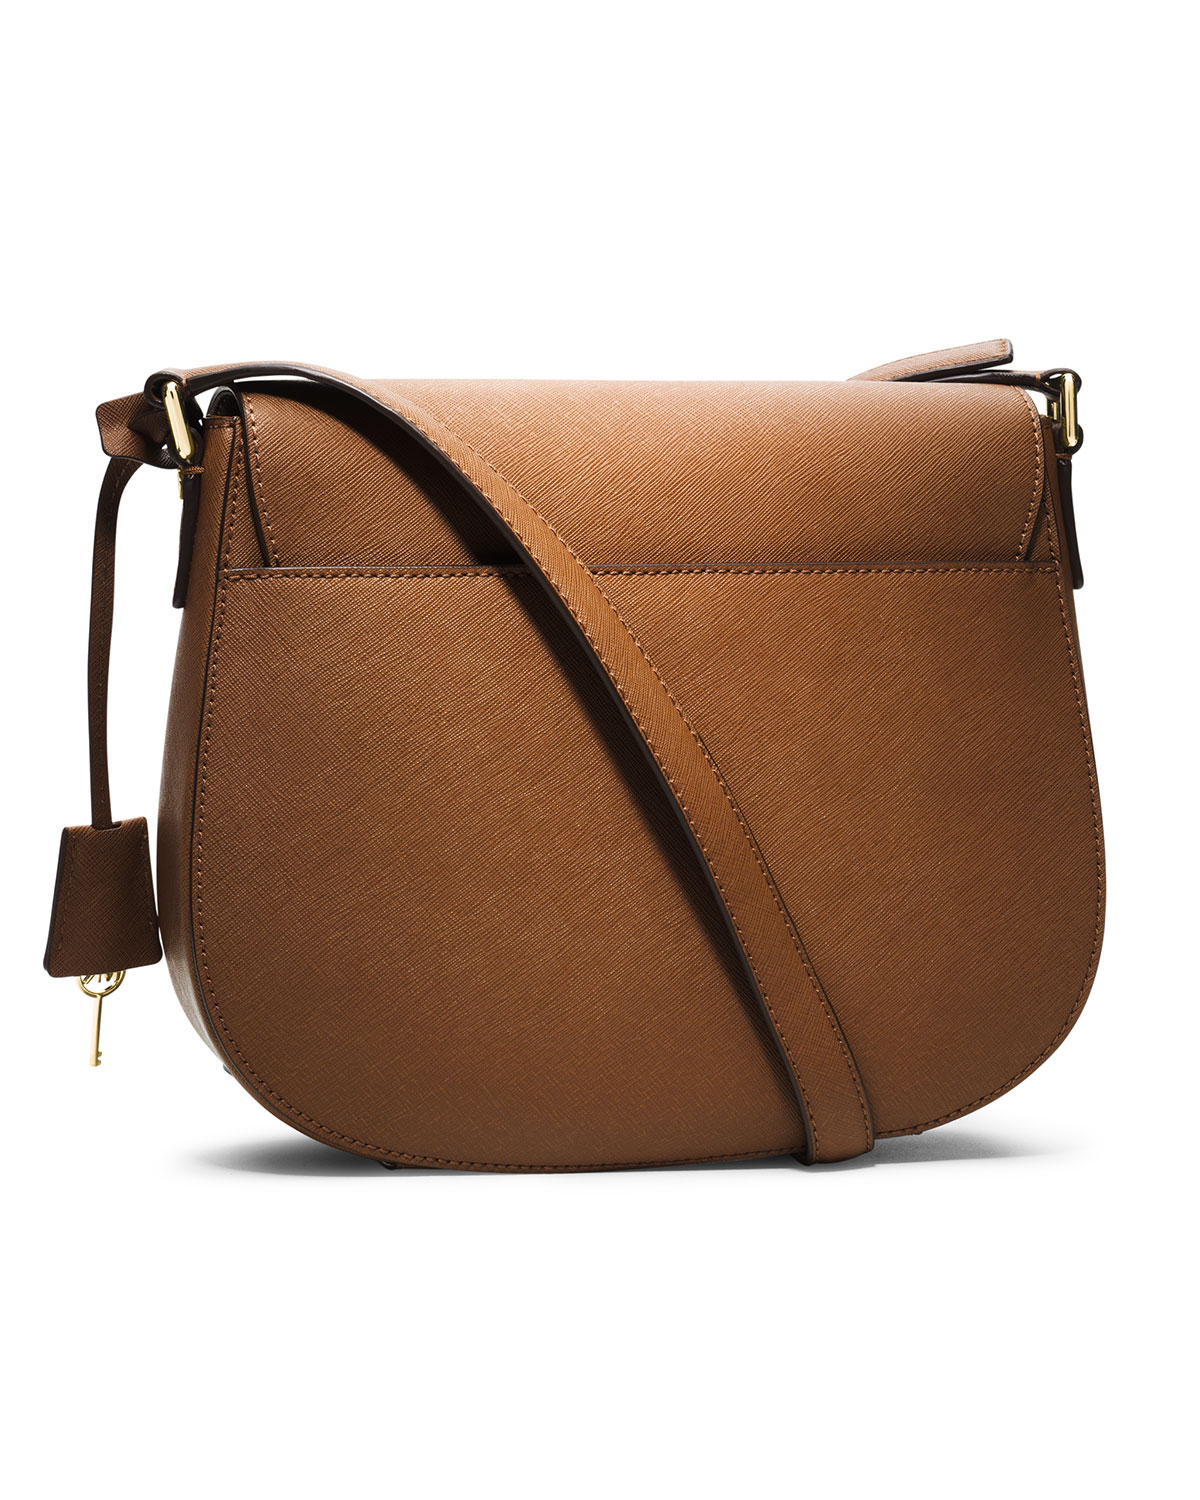 Lyst - MICHAEL Michael Kors Large Hamilton Messenger in Brown 0caef44c02a